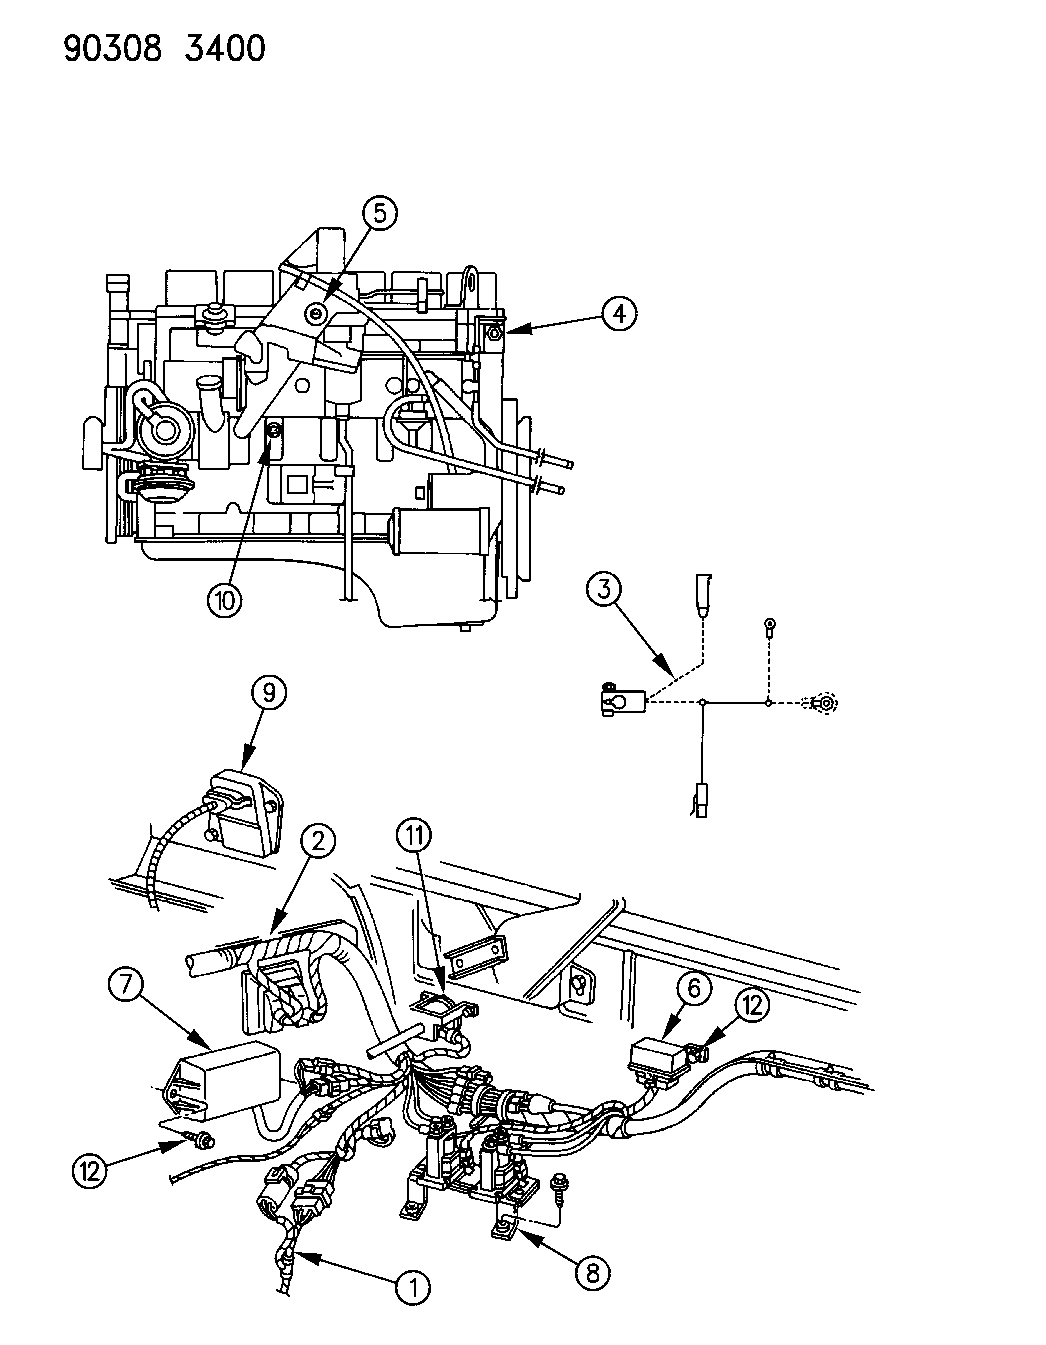 4429547 - genuine mopar sensor-temperature 1981 dodge d150 wiring diagram